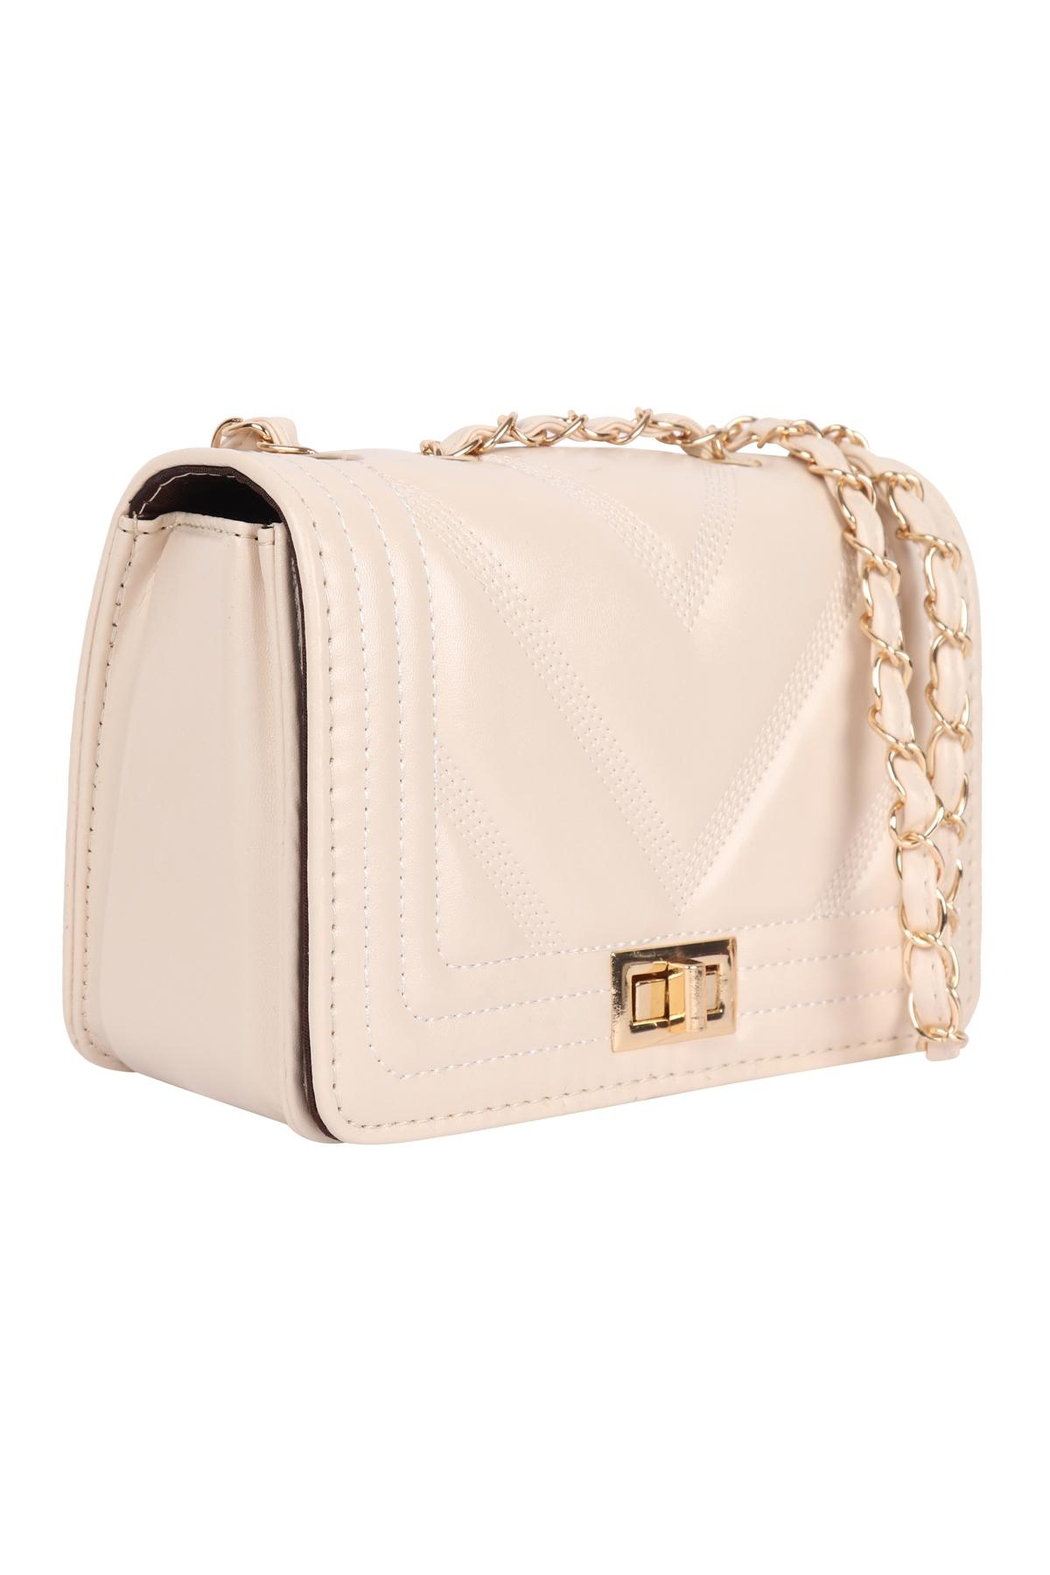 Riah Fashion Quilted-Designe-Leather-Fahion-Bag-Cross-Body-Bag - Side Cropped Image